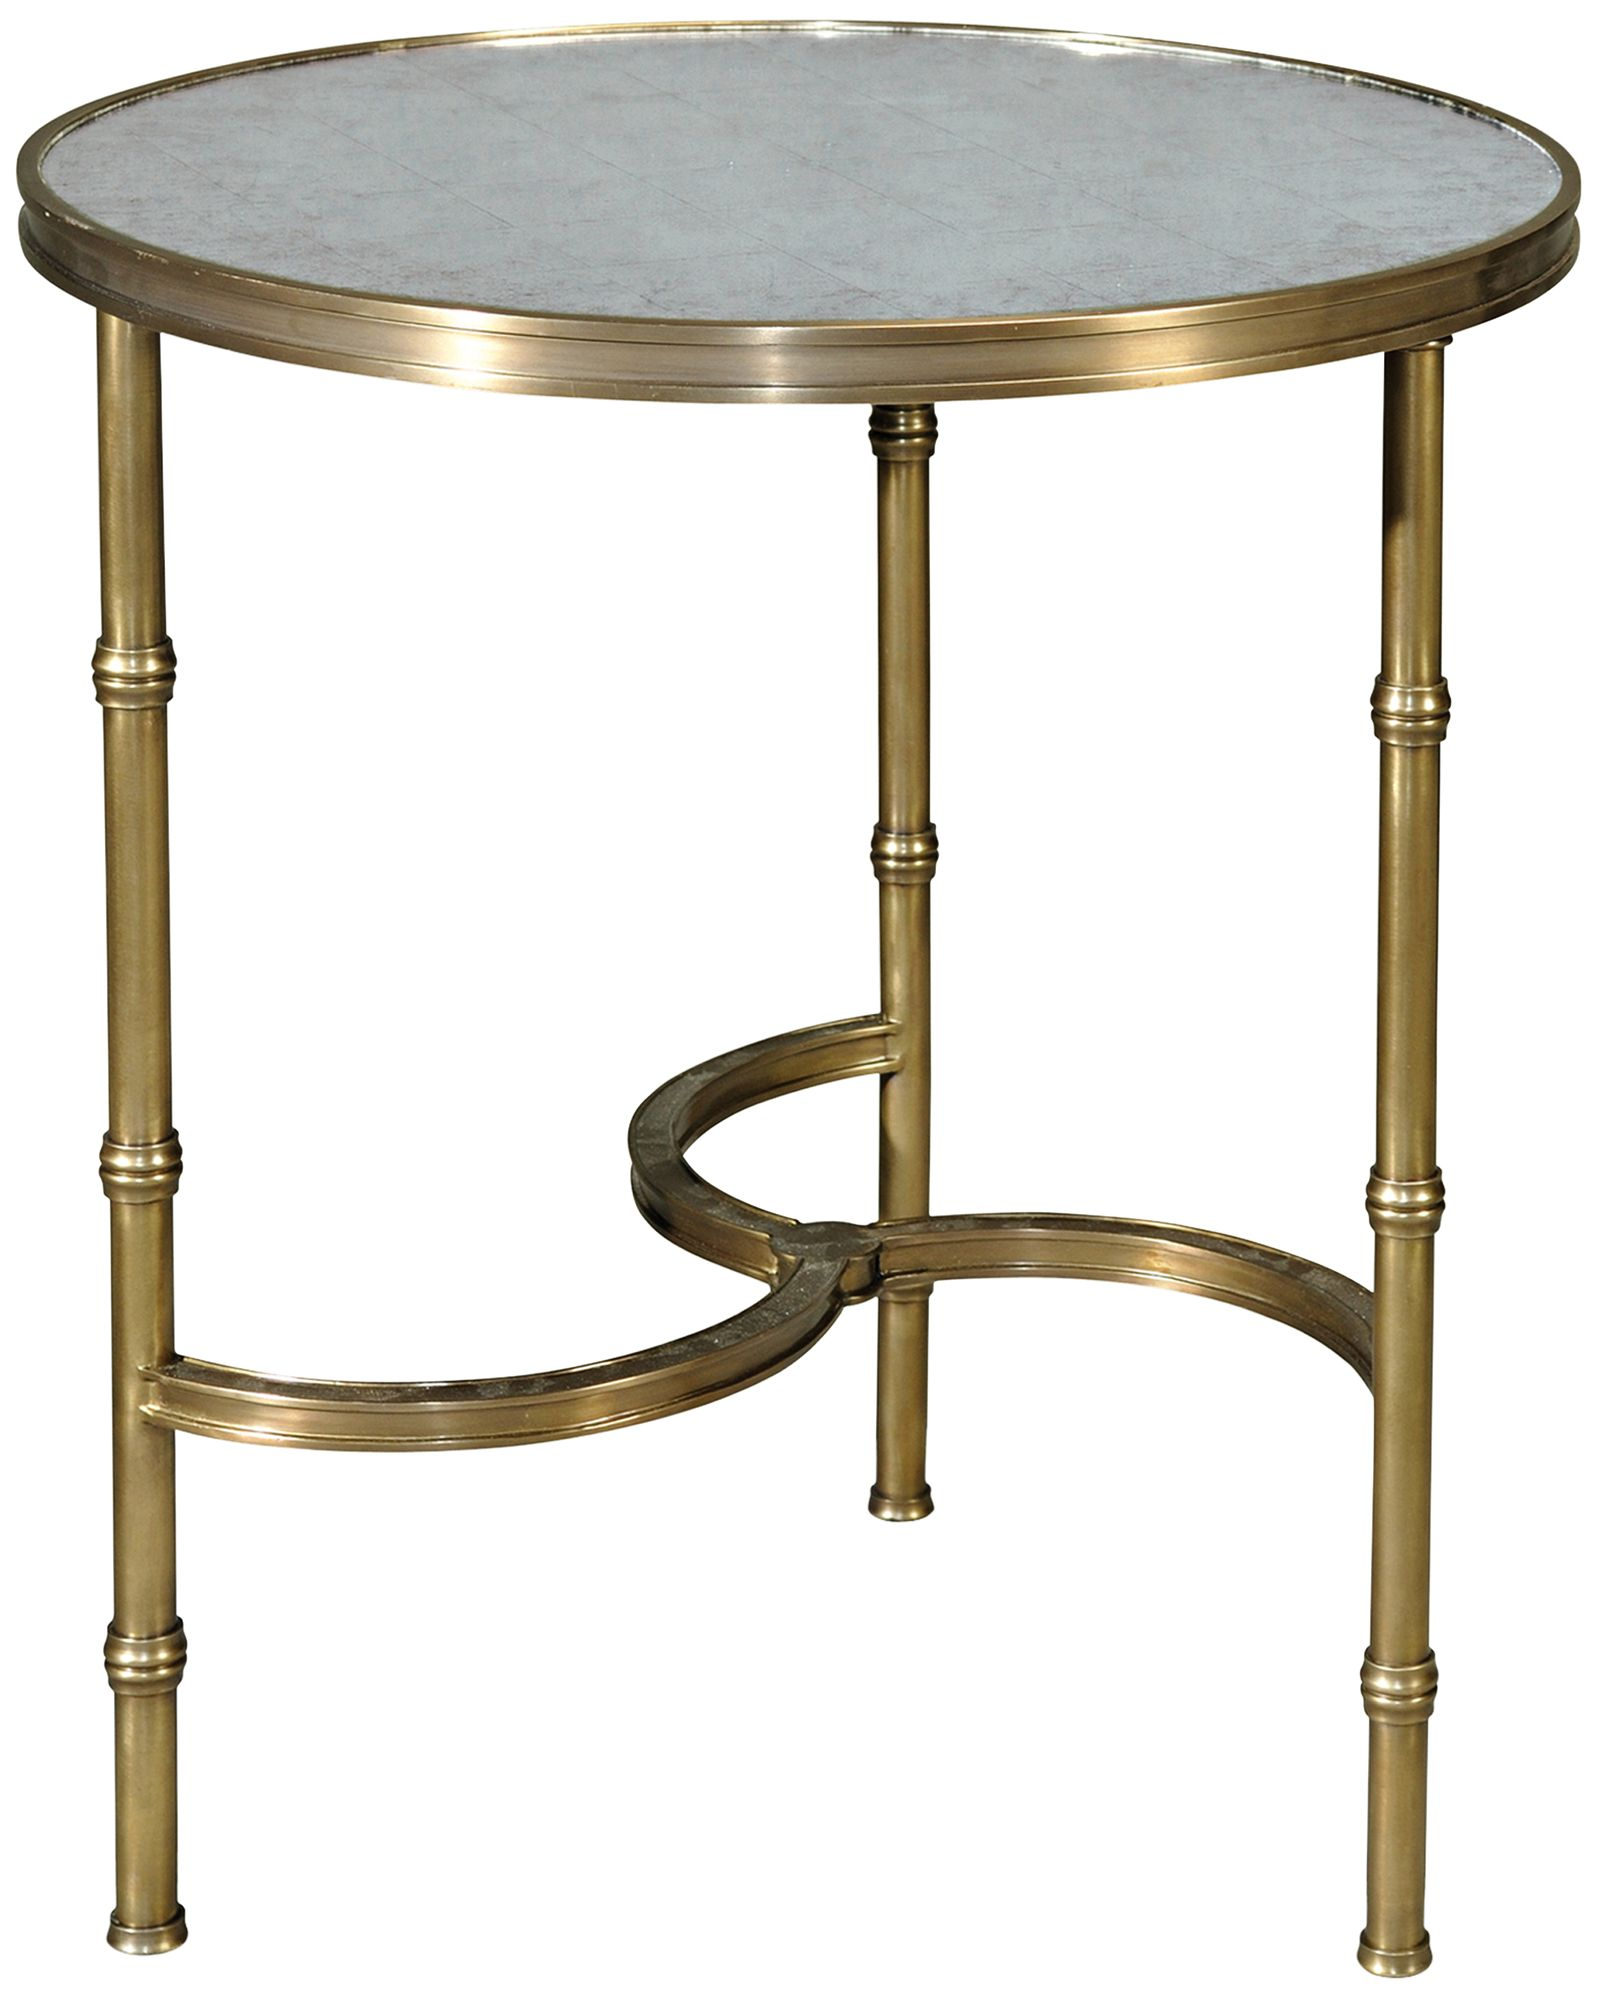 Attractive Brass All Around Glass Top Round Accent Table